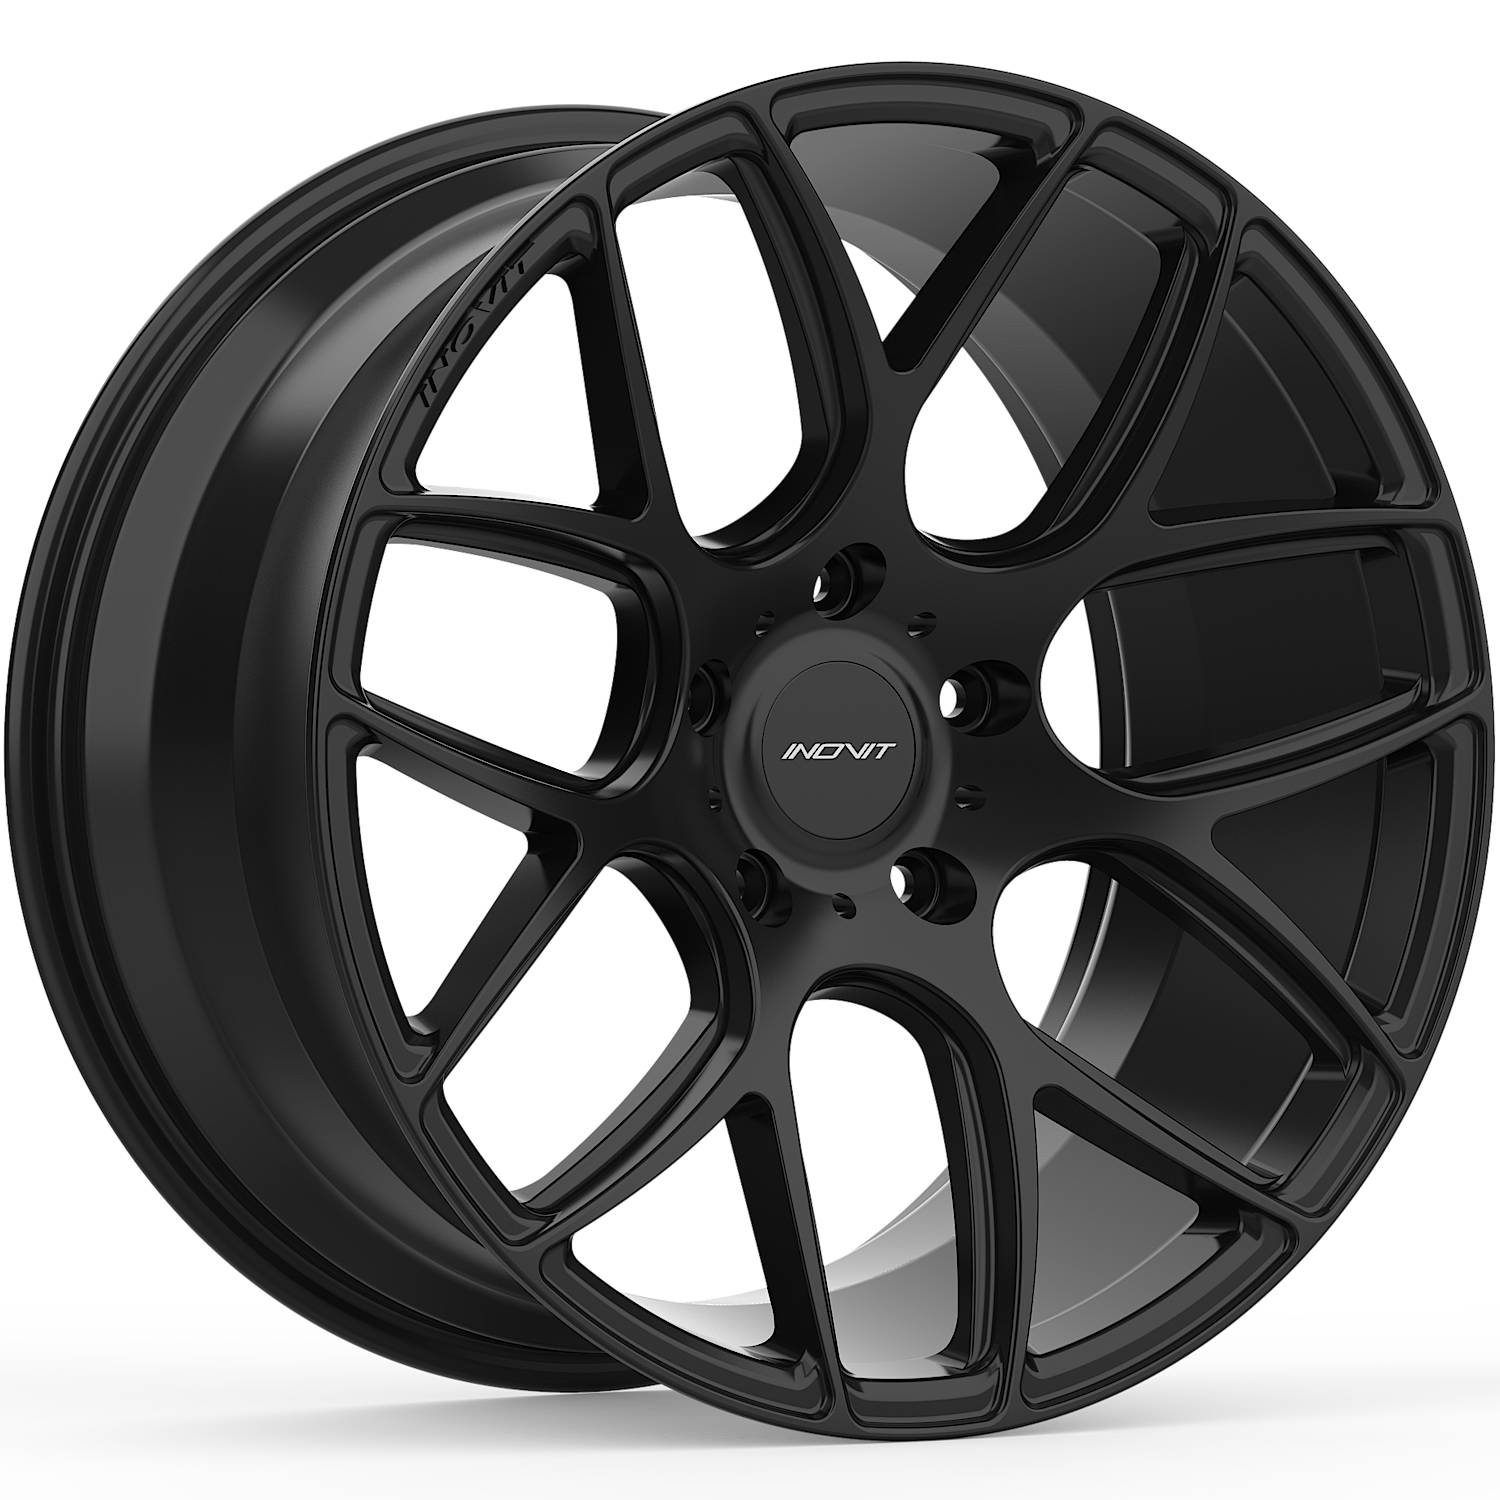 INOVIT Thrust Satin Black20x8.5 +37mm